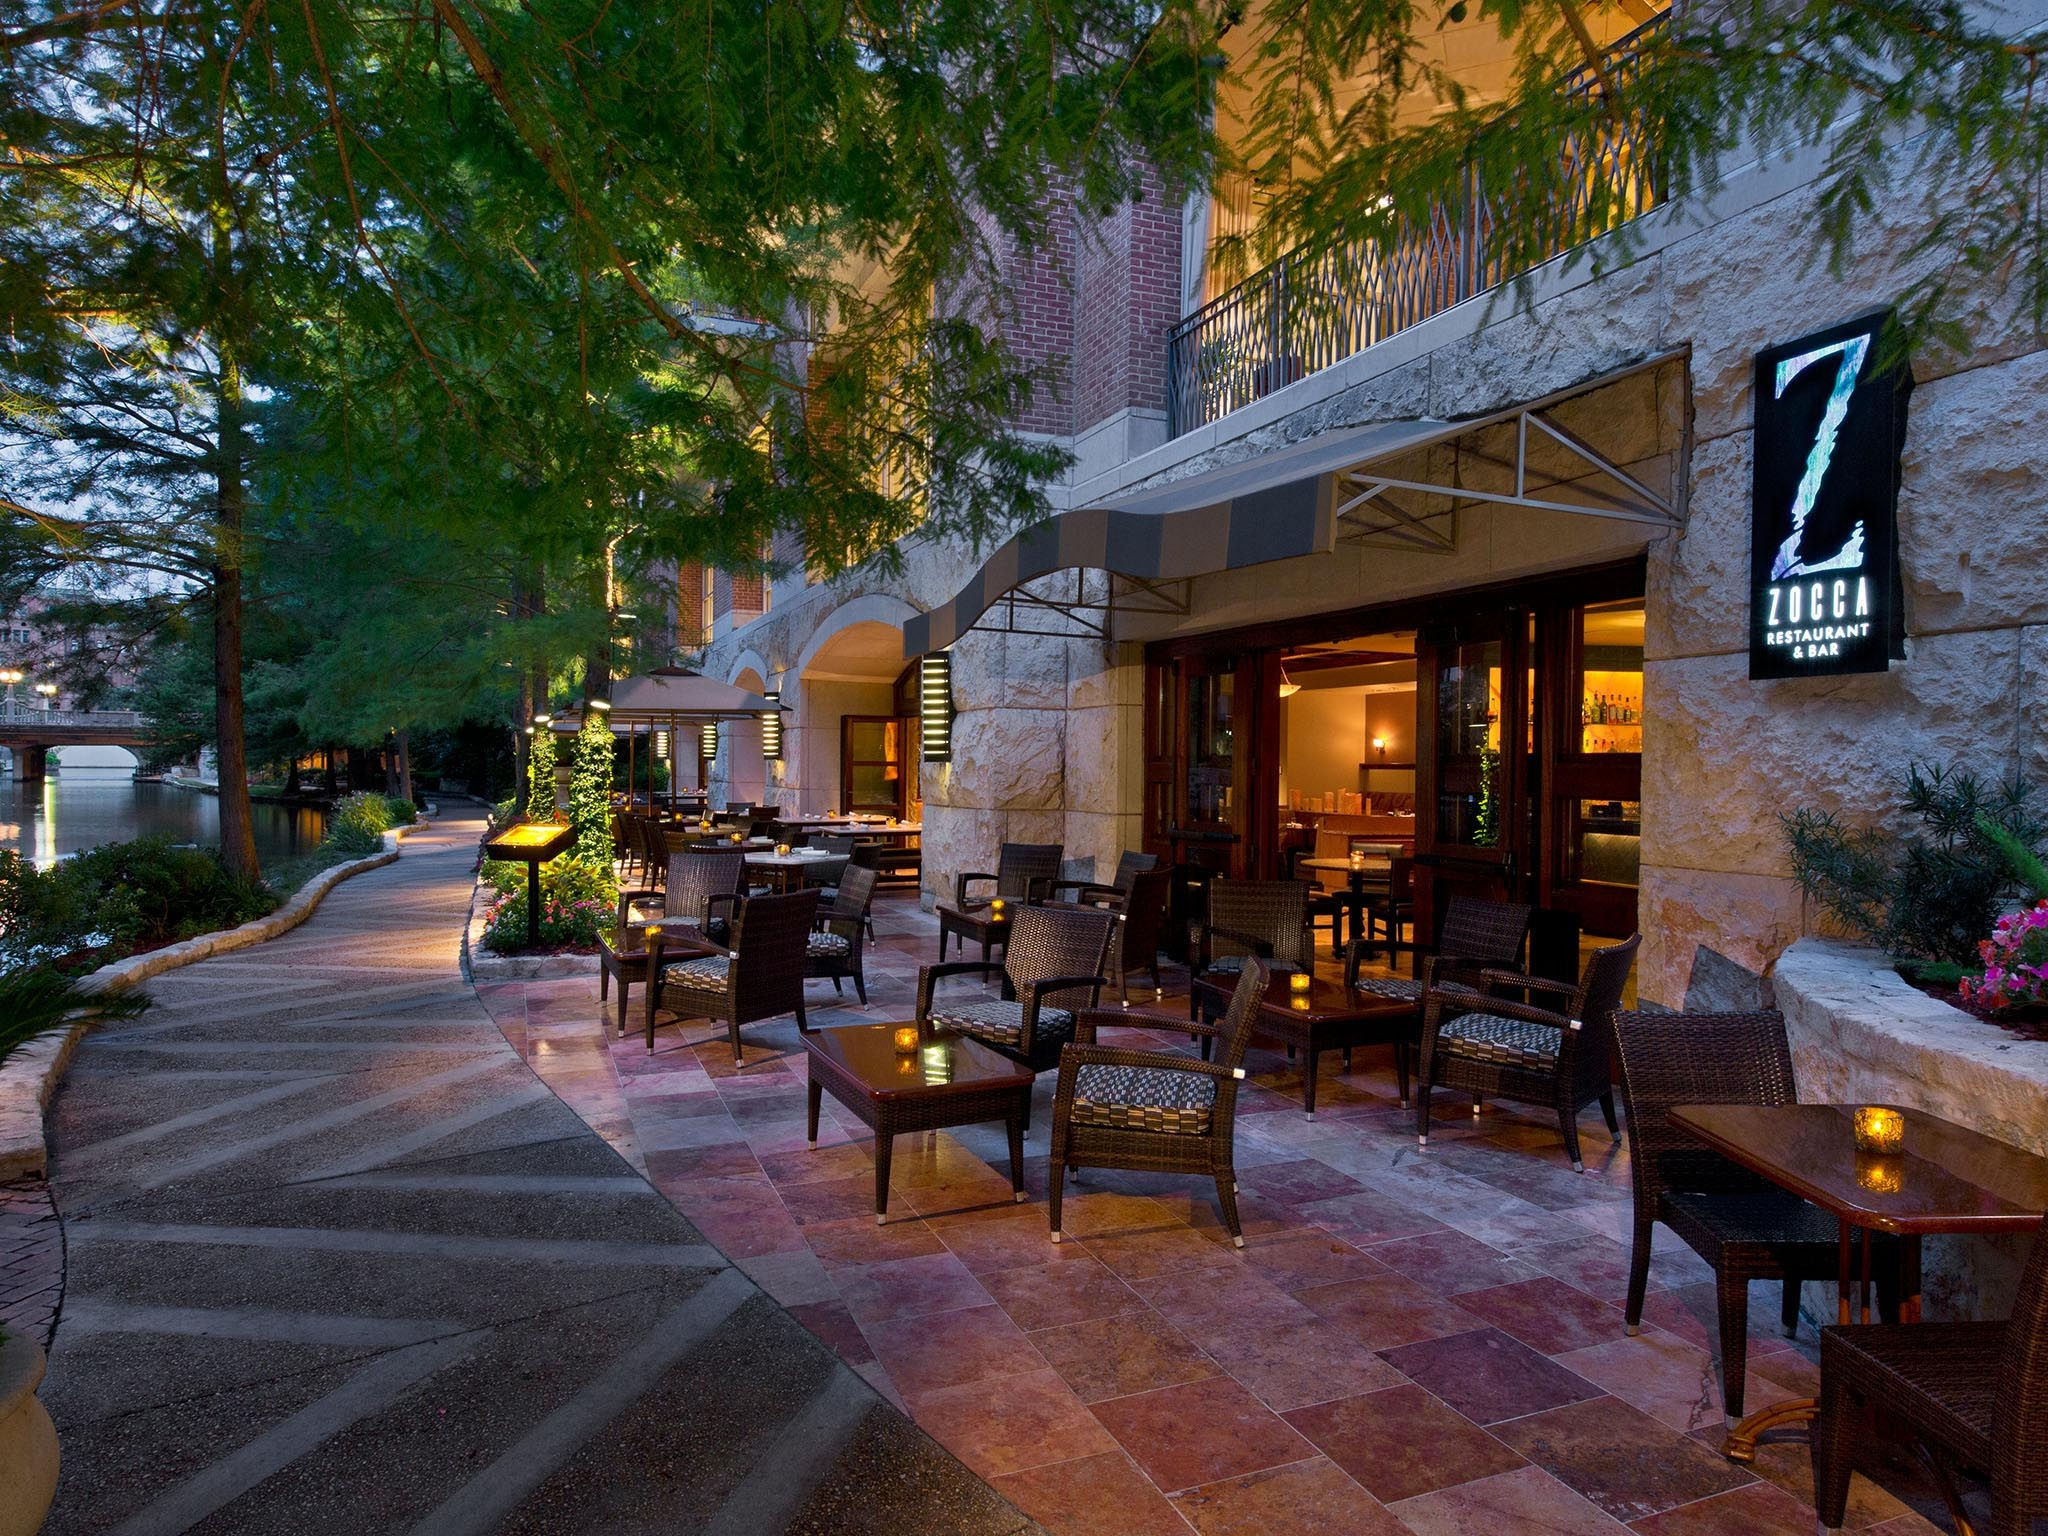 San Antonio Riverwalk Restaurants at The Westin